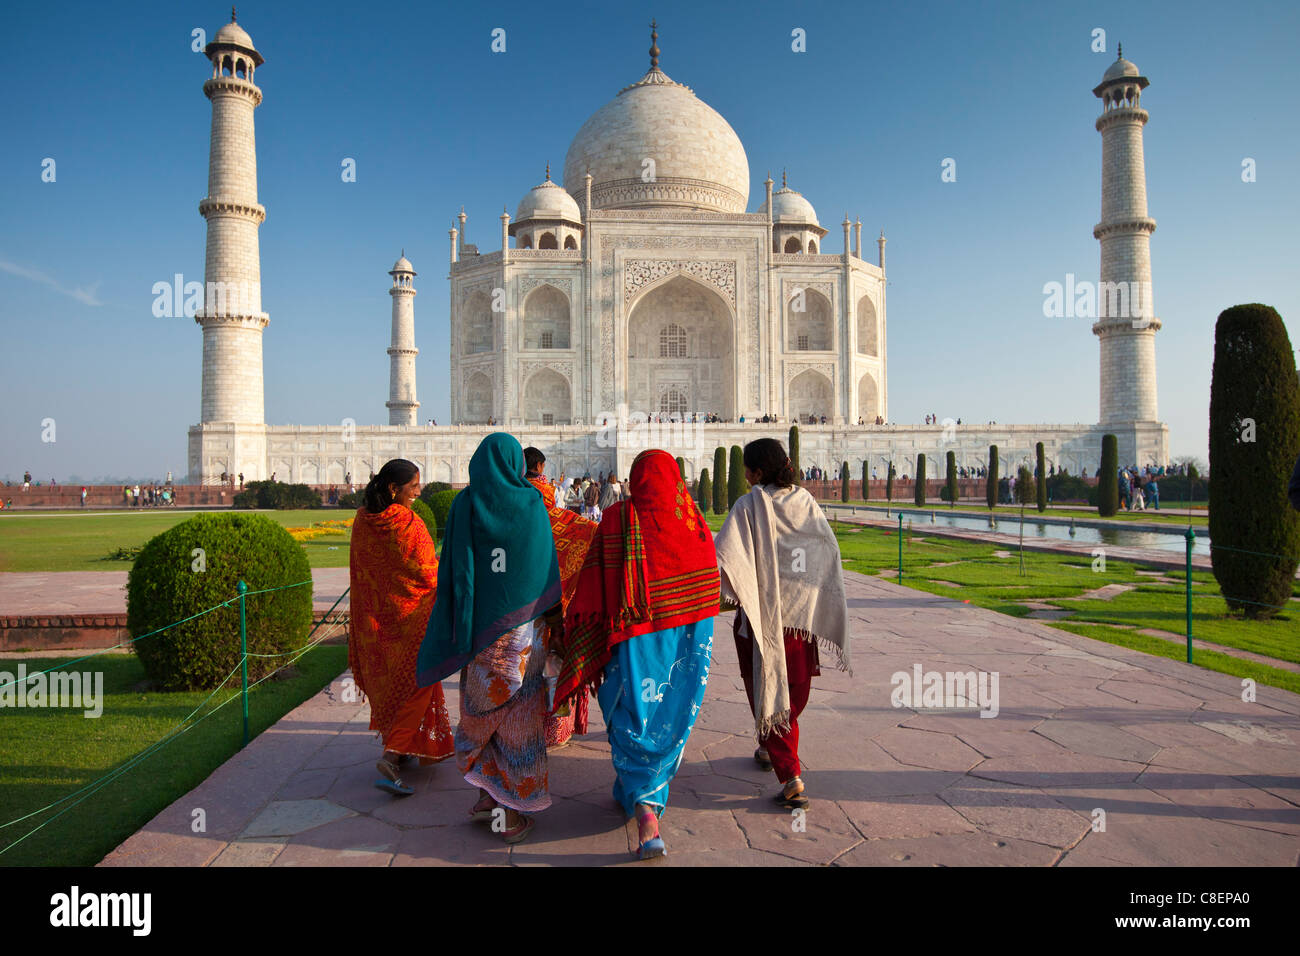 Indian tourists visiting The Taj Mahal mausoleum approach the southern view, Uttar Pradesh, India - Stock Image